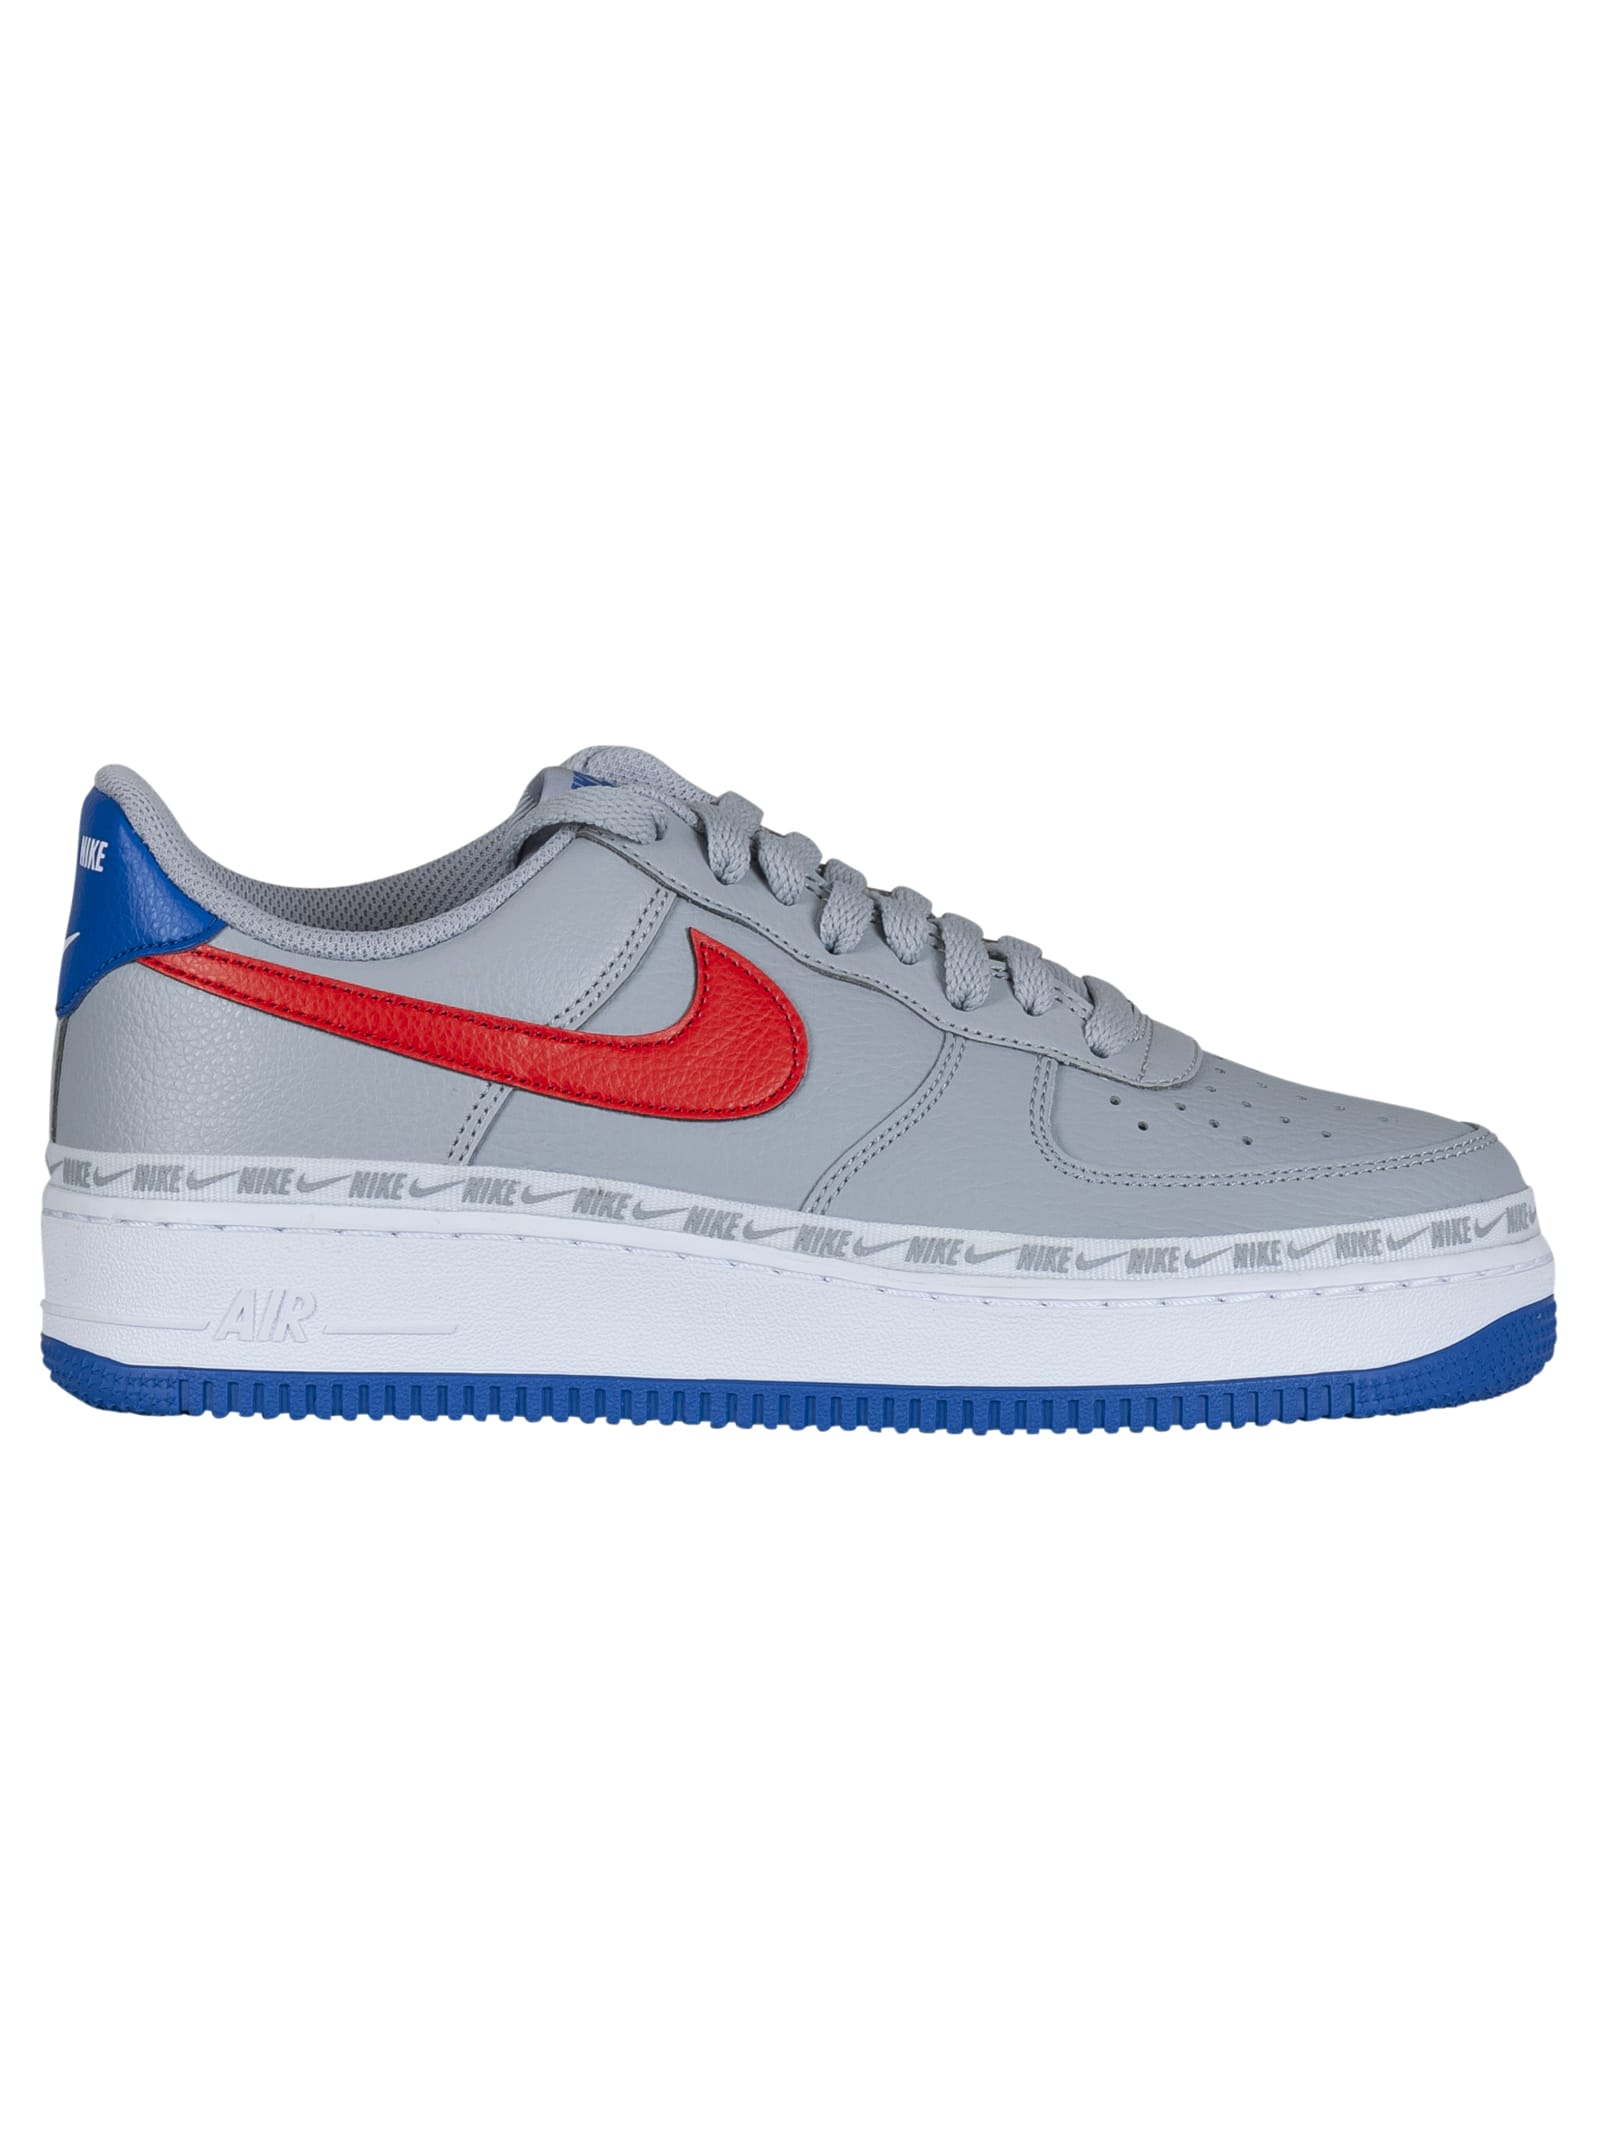 2air force 1 grigie